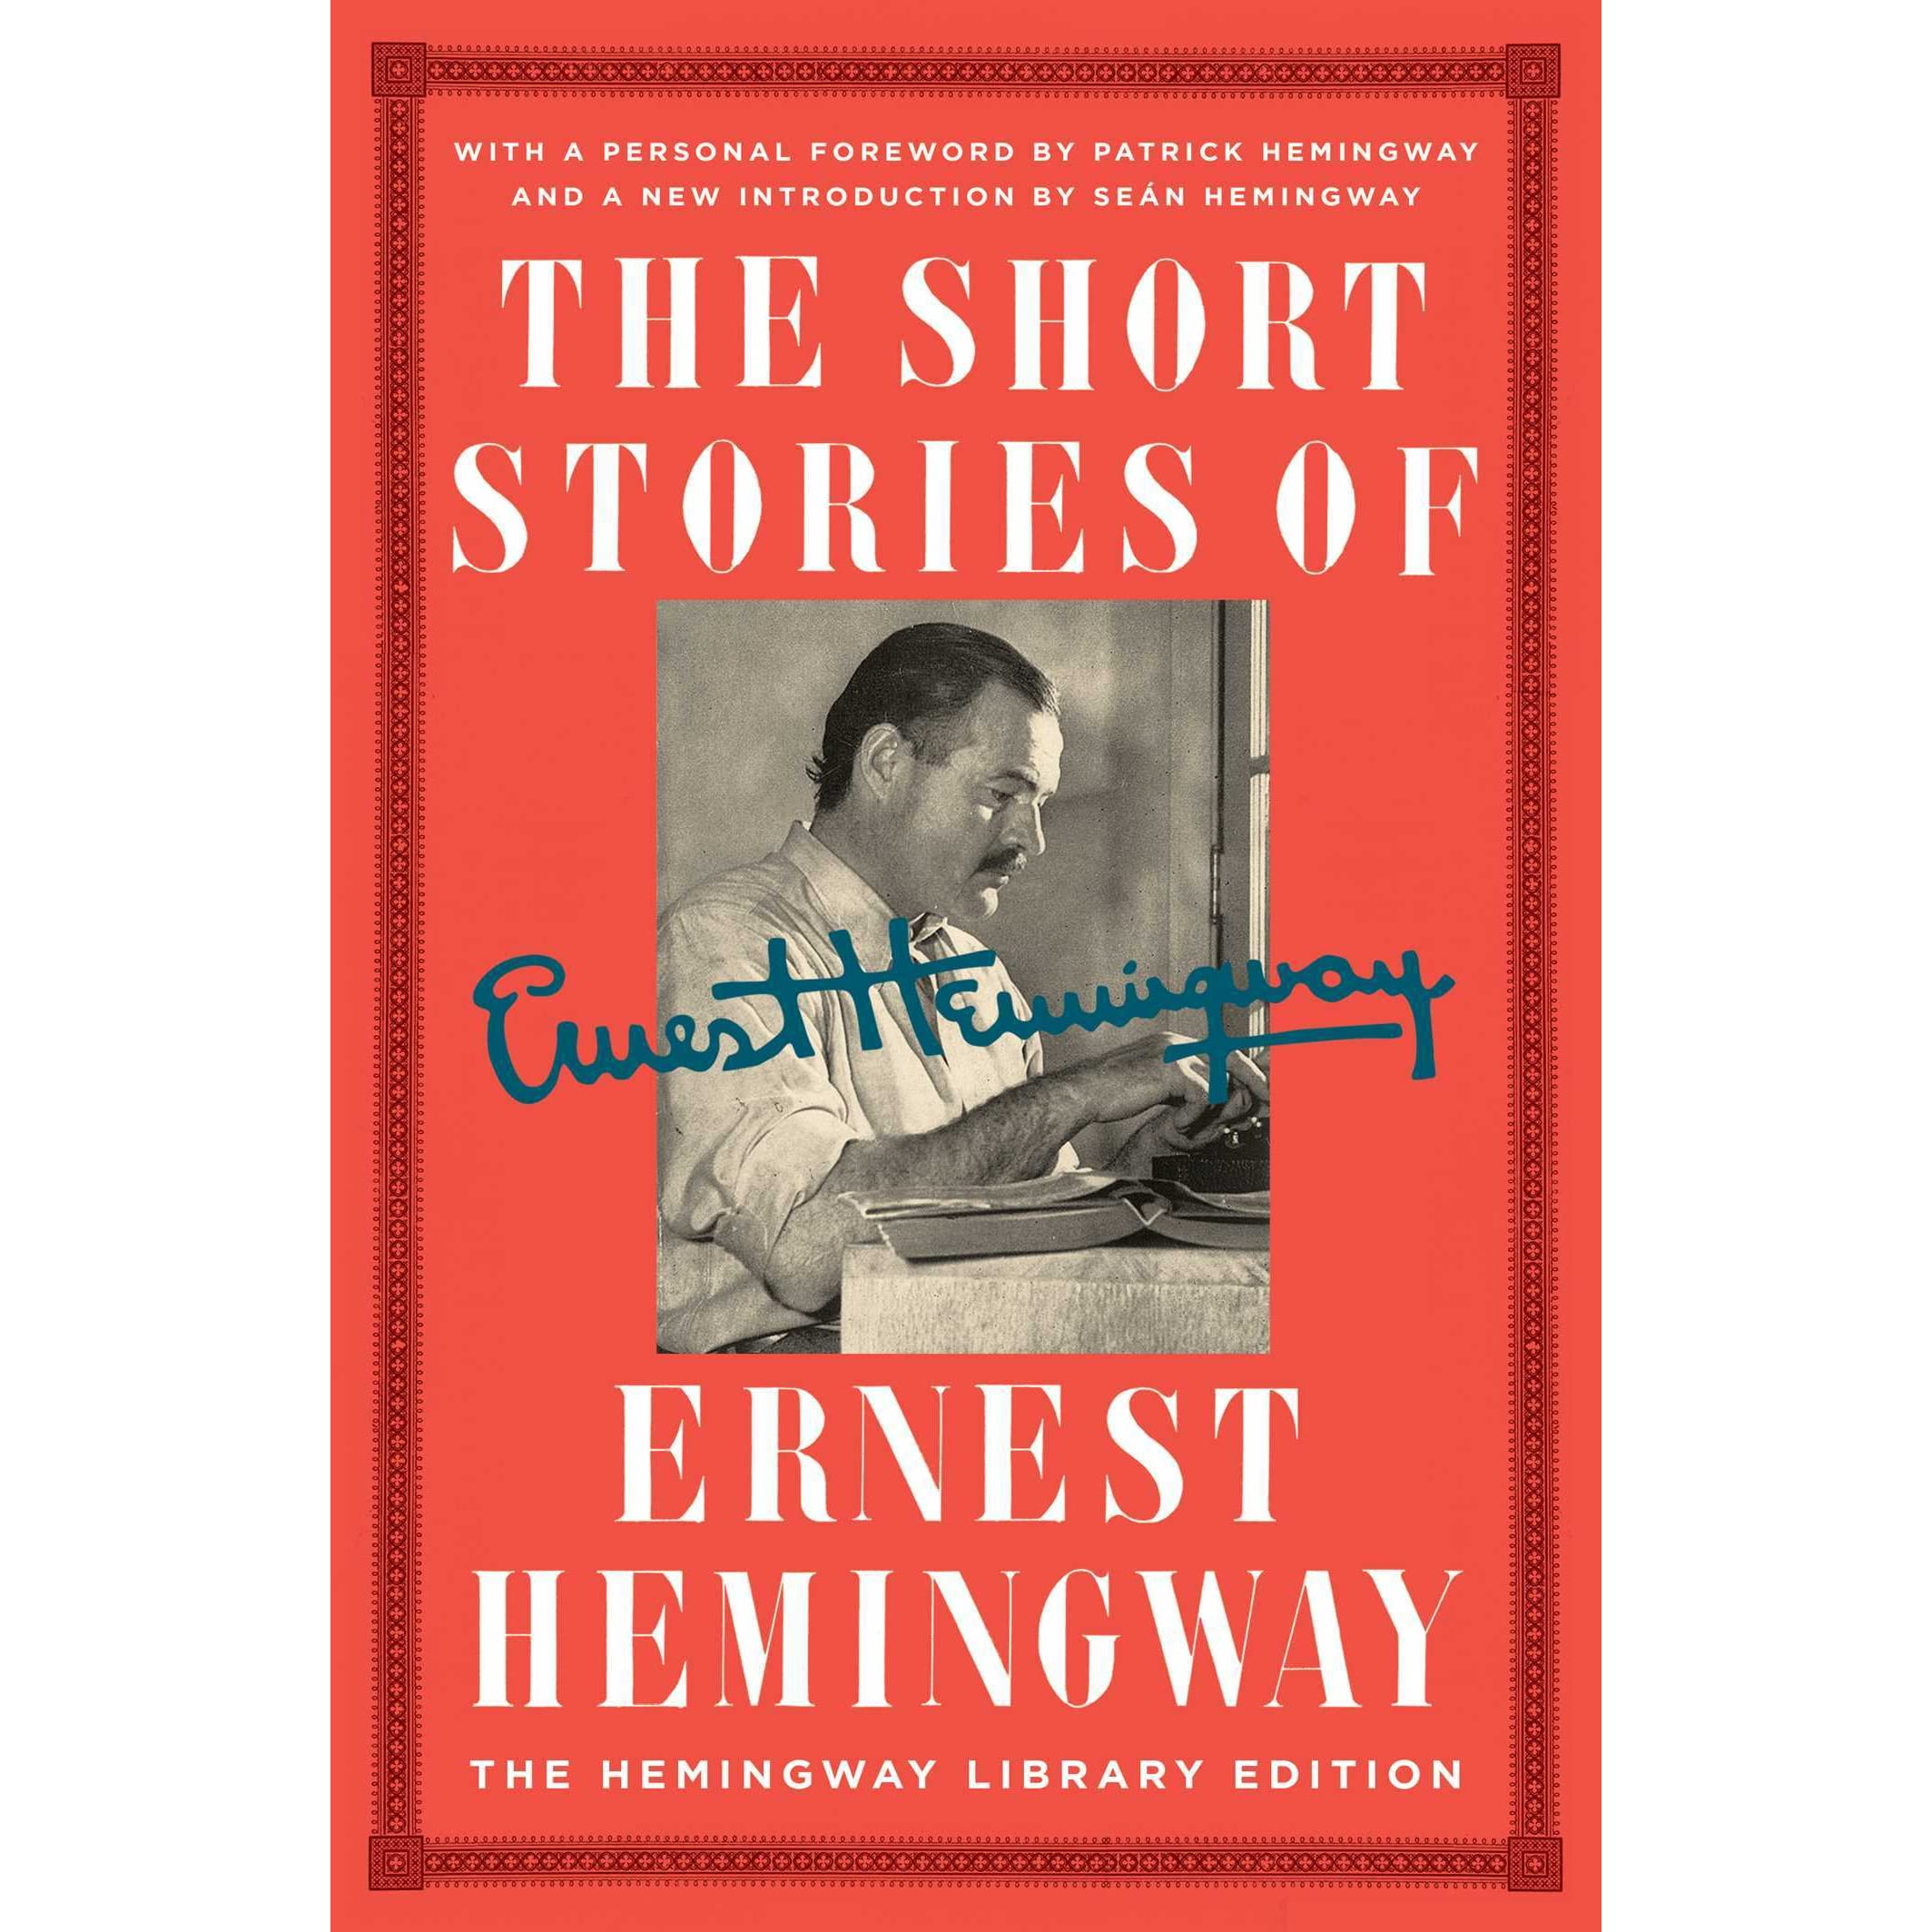 an introduction to the ignorance in the literature by ernest hemingway The nobel prize in literature 1954 ernest hemingway and dr anders österling spoke for the absent nobel laureate in literature, ernest hemingway.